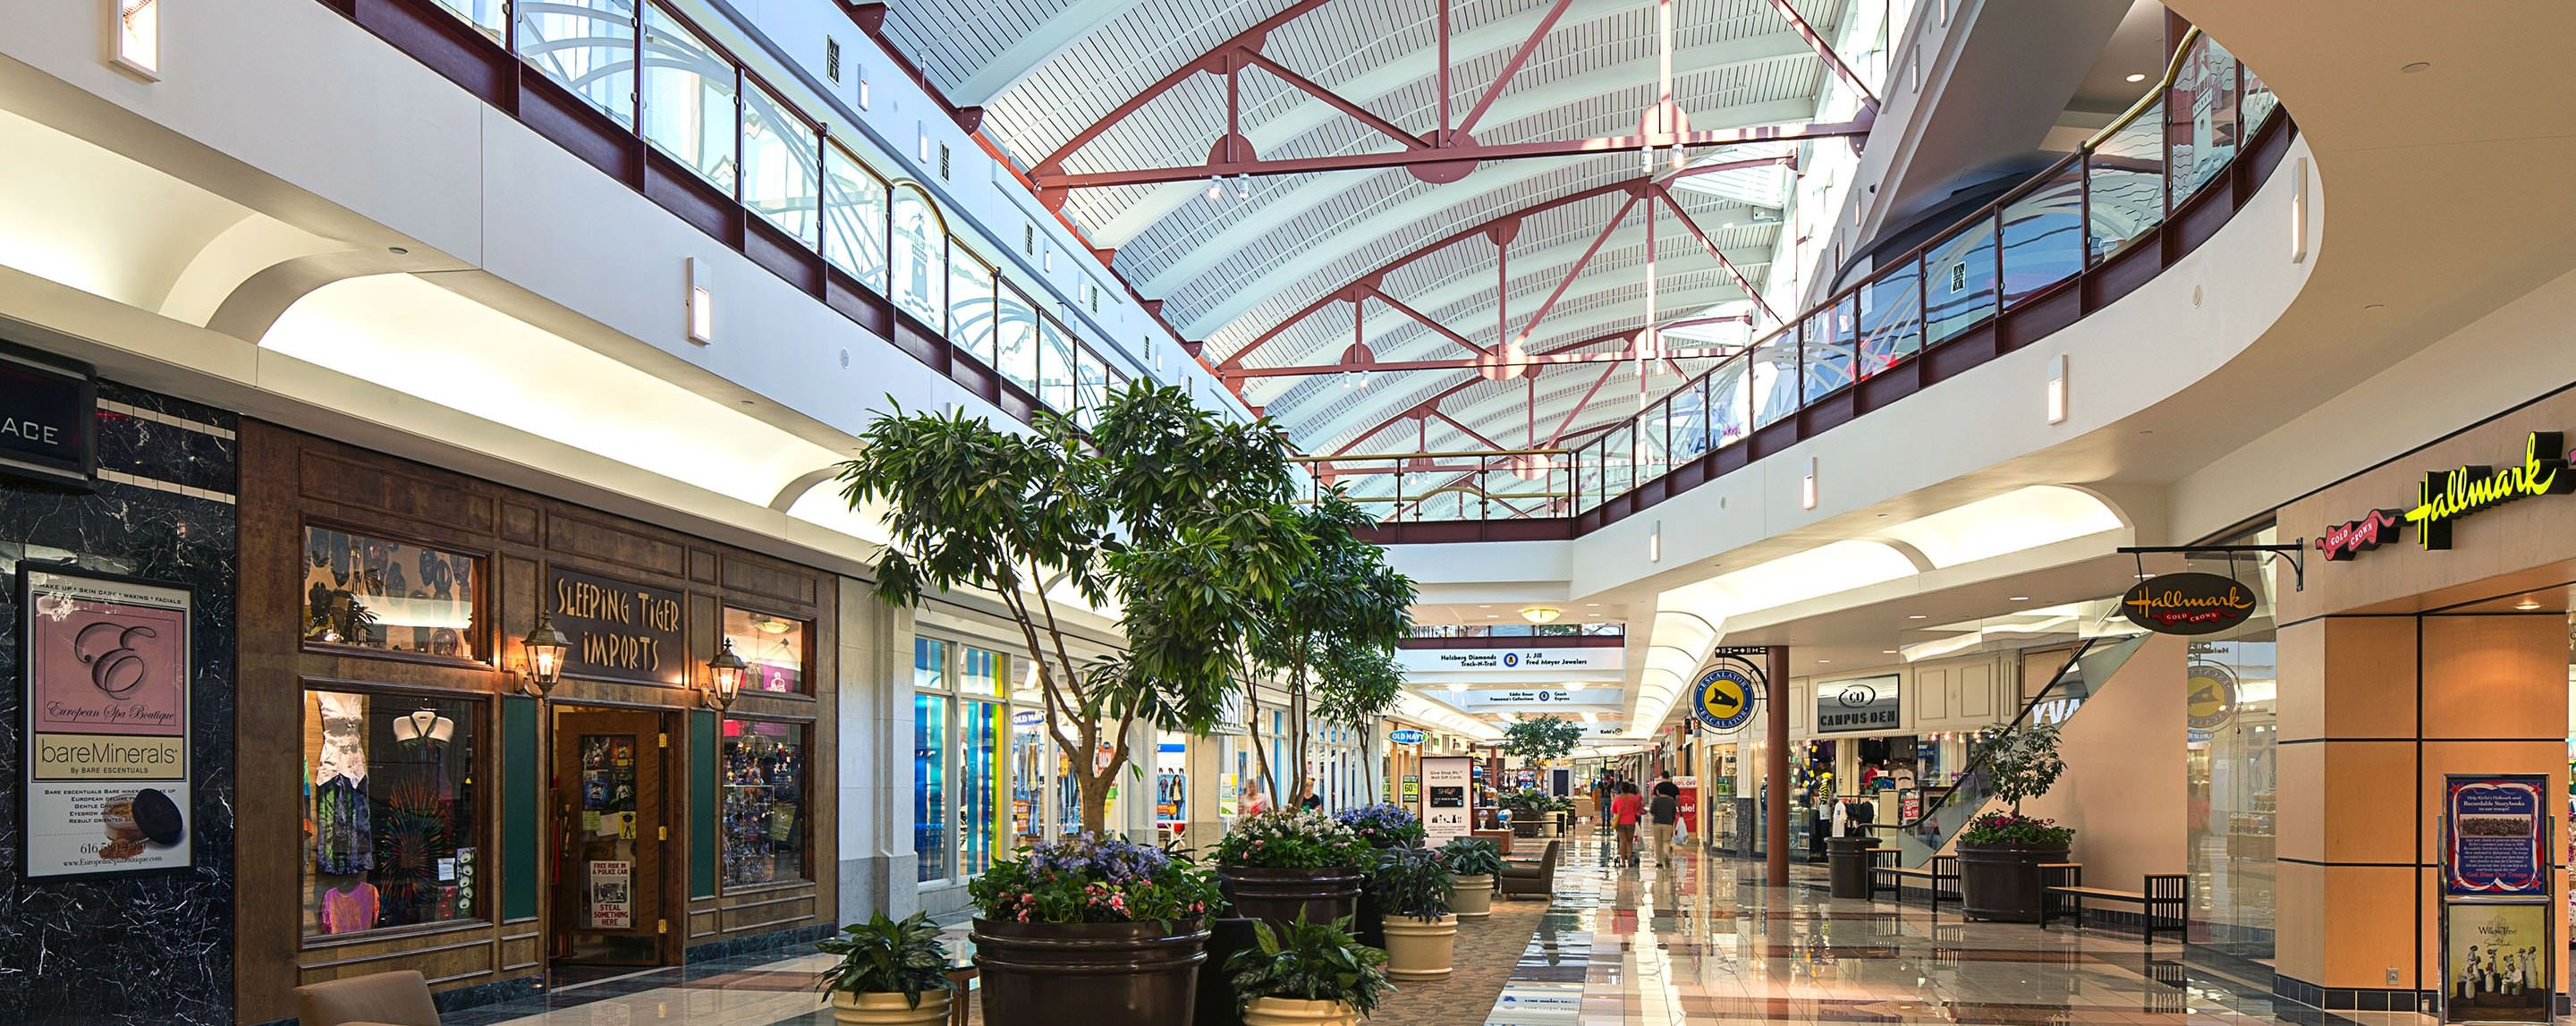 Shoppers walk around various shops and kiosks in an interior walkway at RiverTown Crossings.